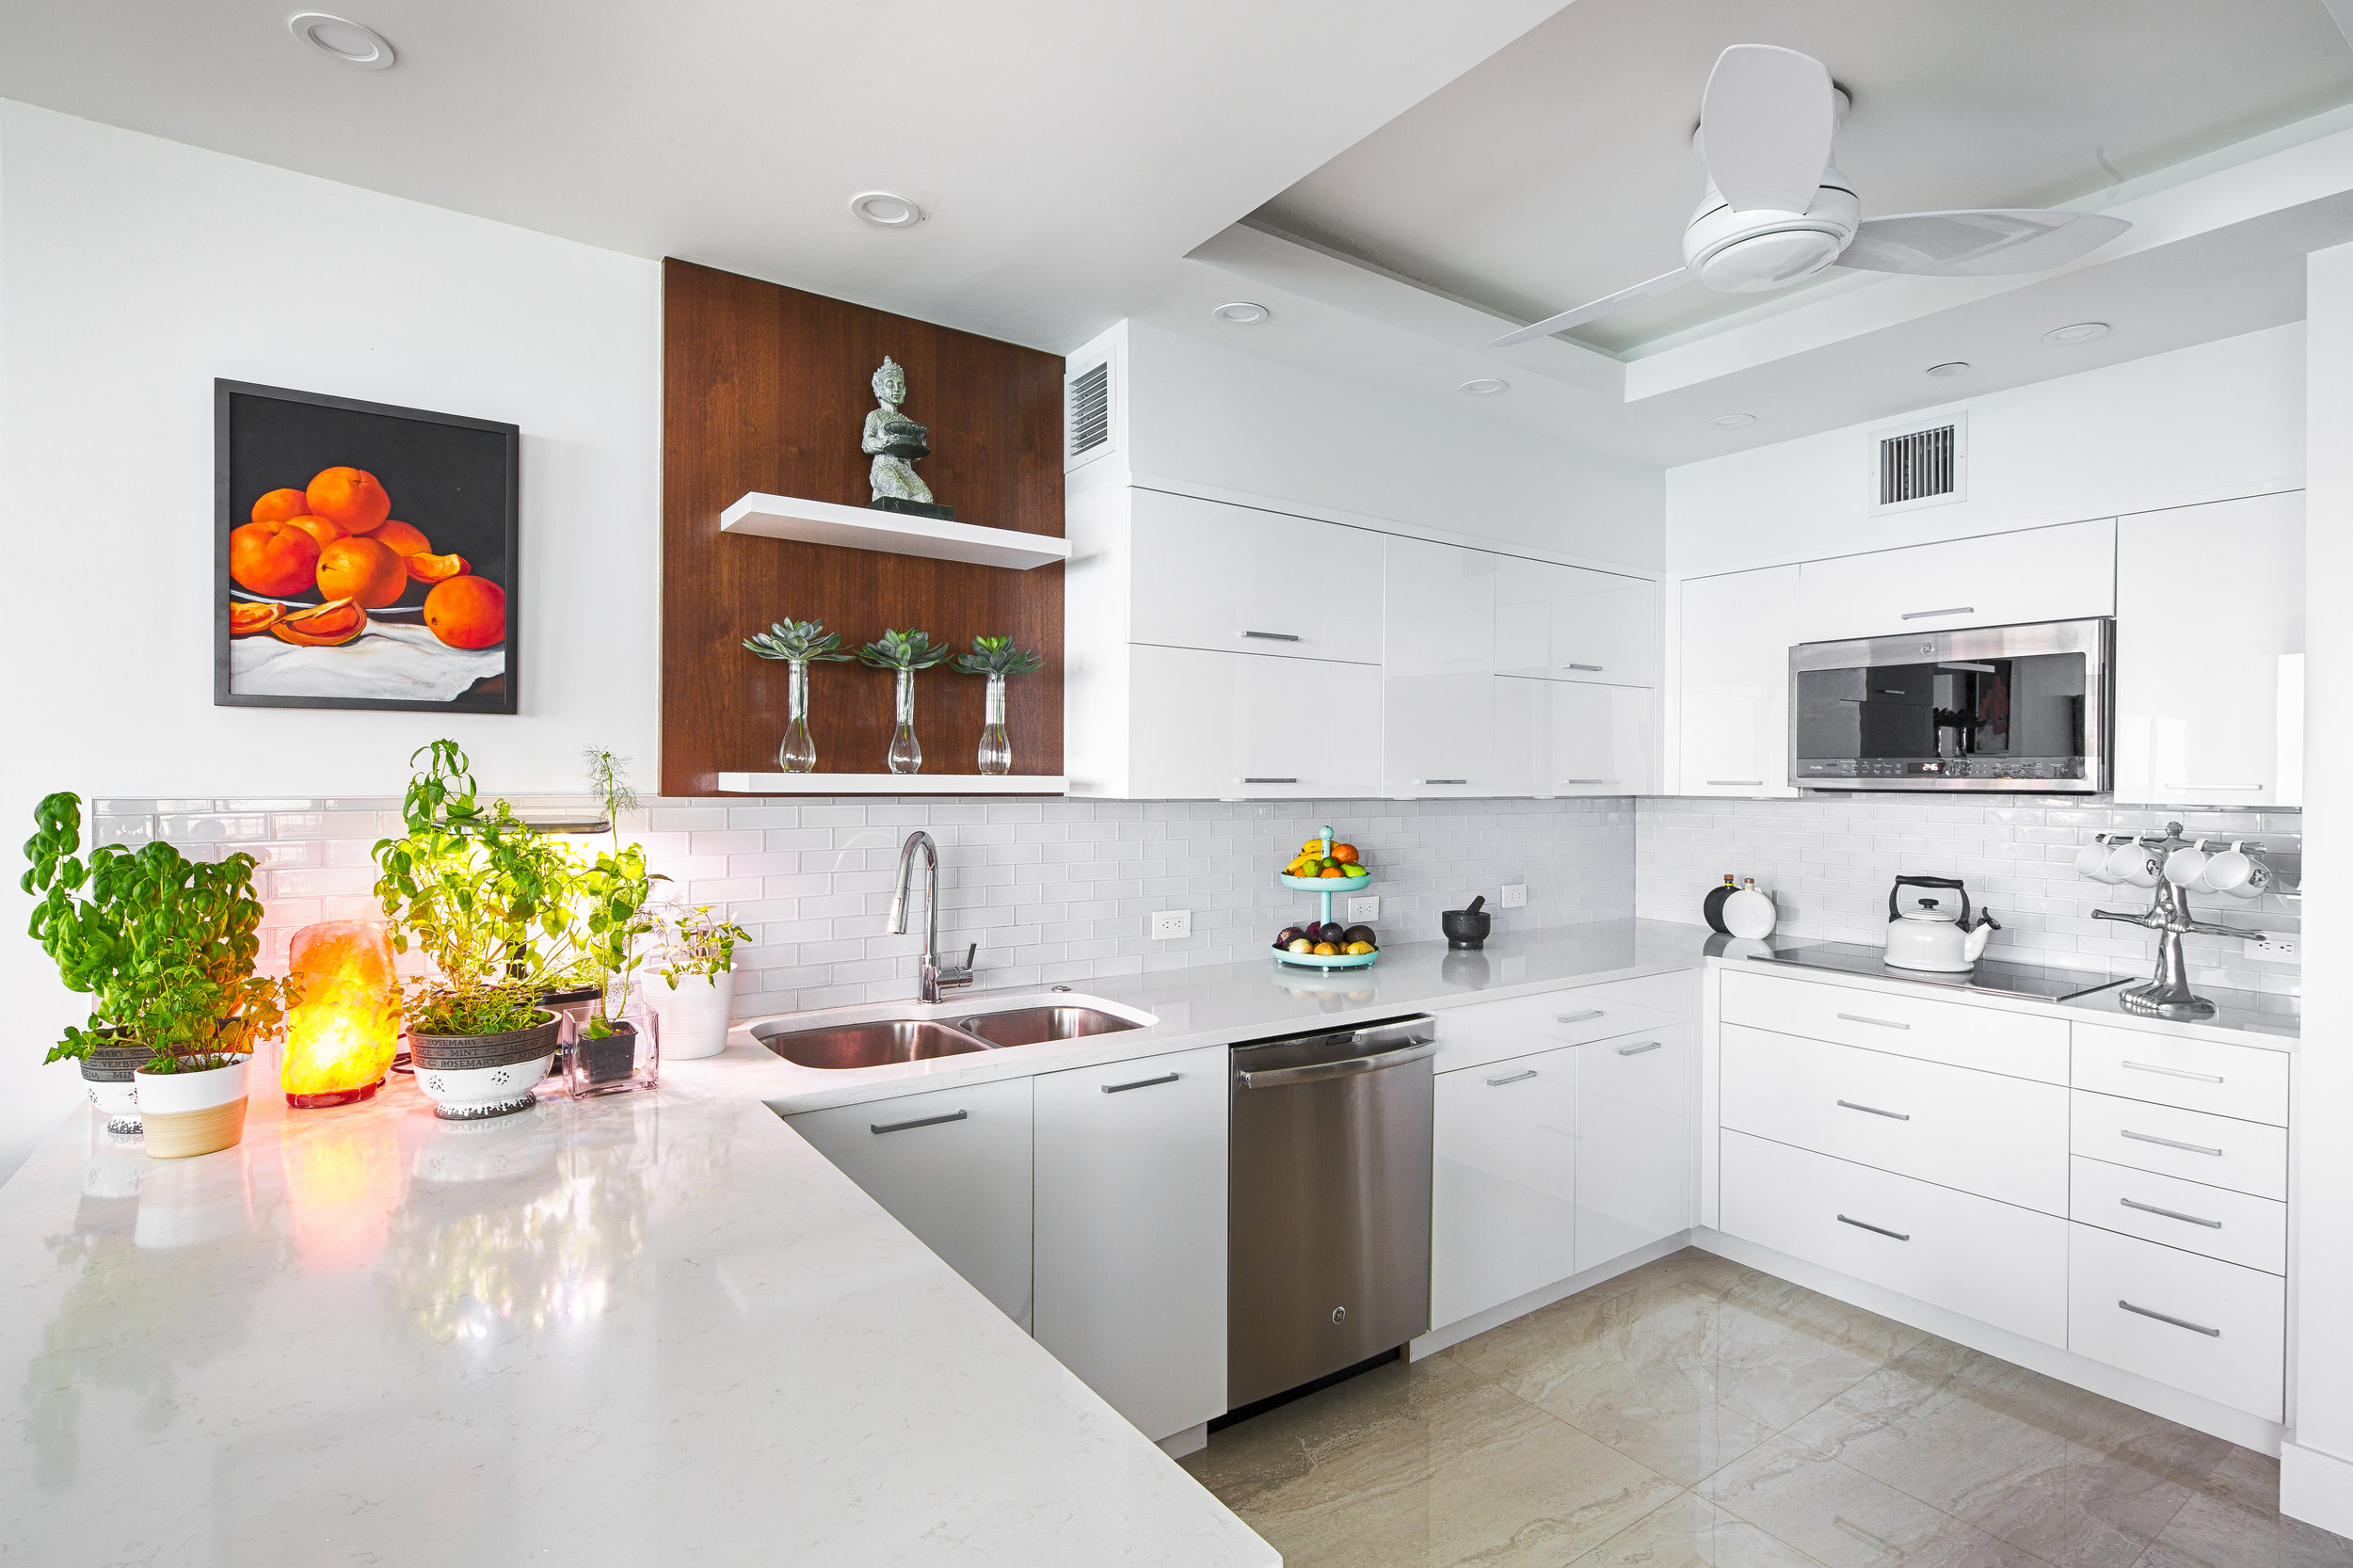 Kitchen Designs from Rooms by Eve, Eve Joss Interior Design1.jpg